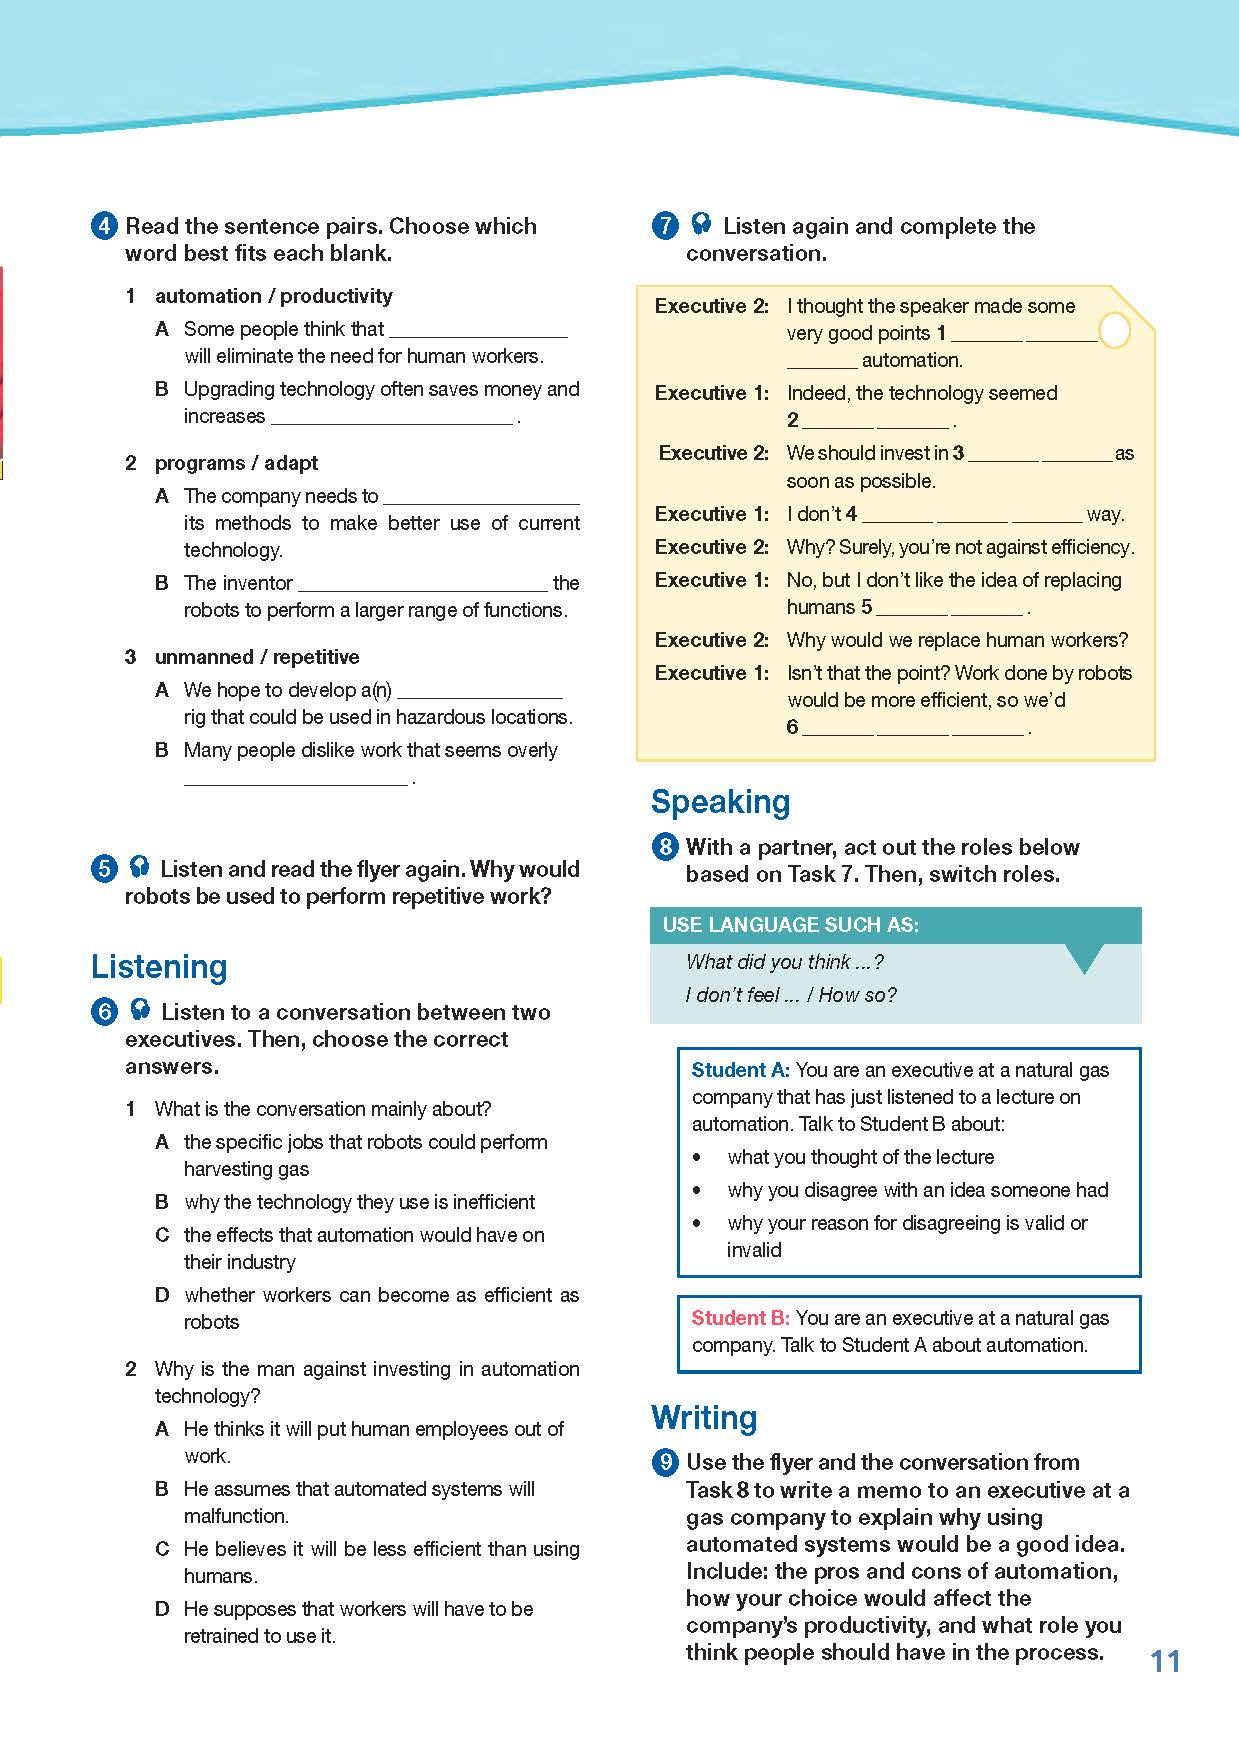 ESP English for Specific Purposes - Career Paths: Natural Gas I - Sample Page 2